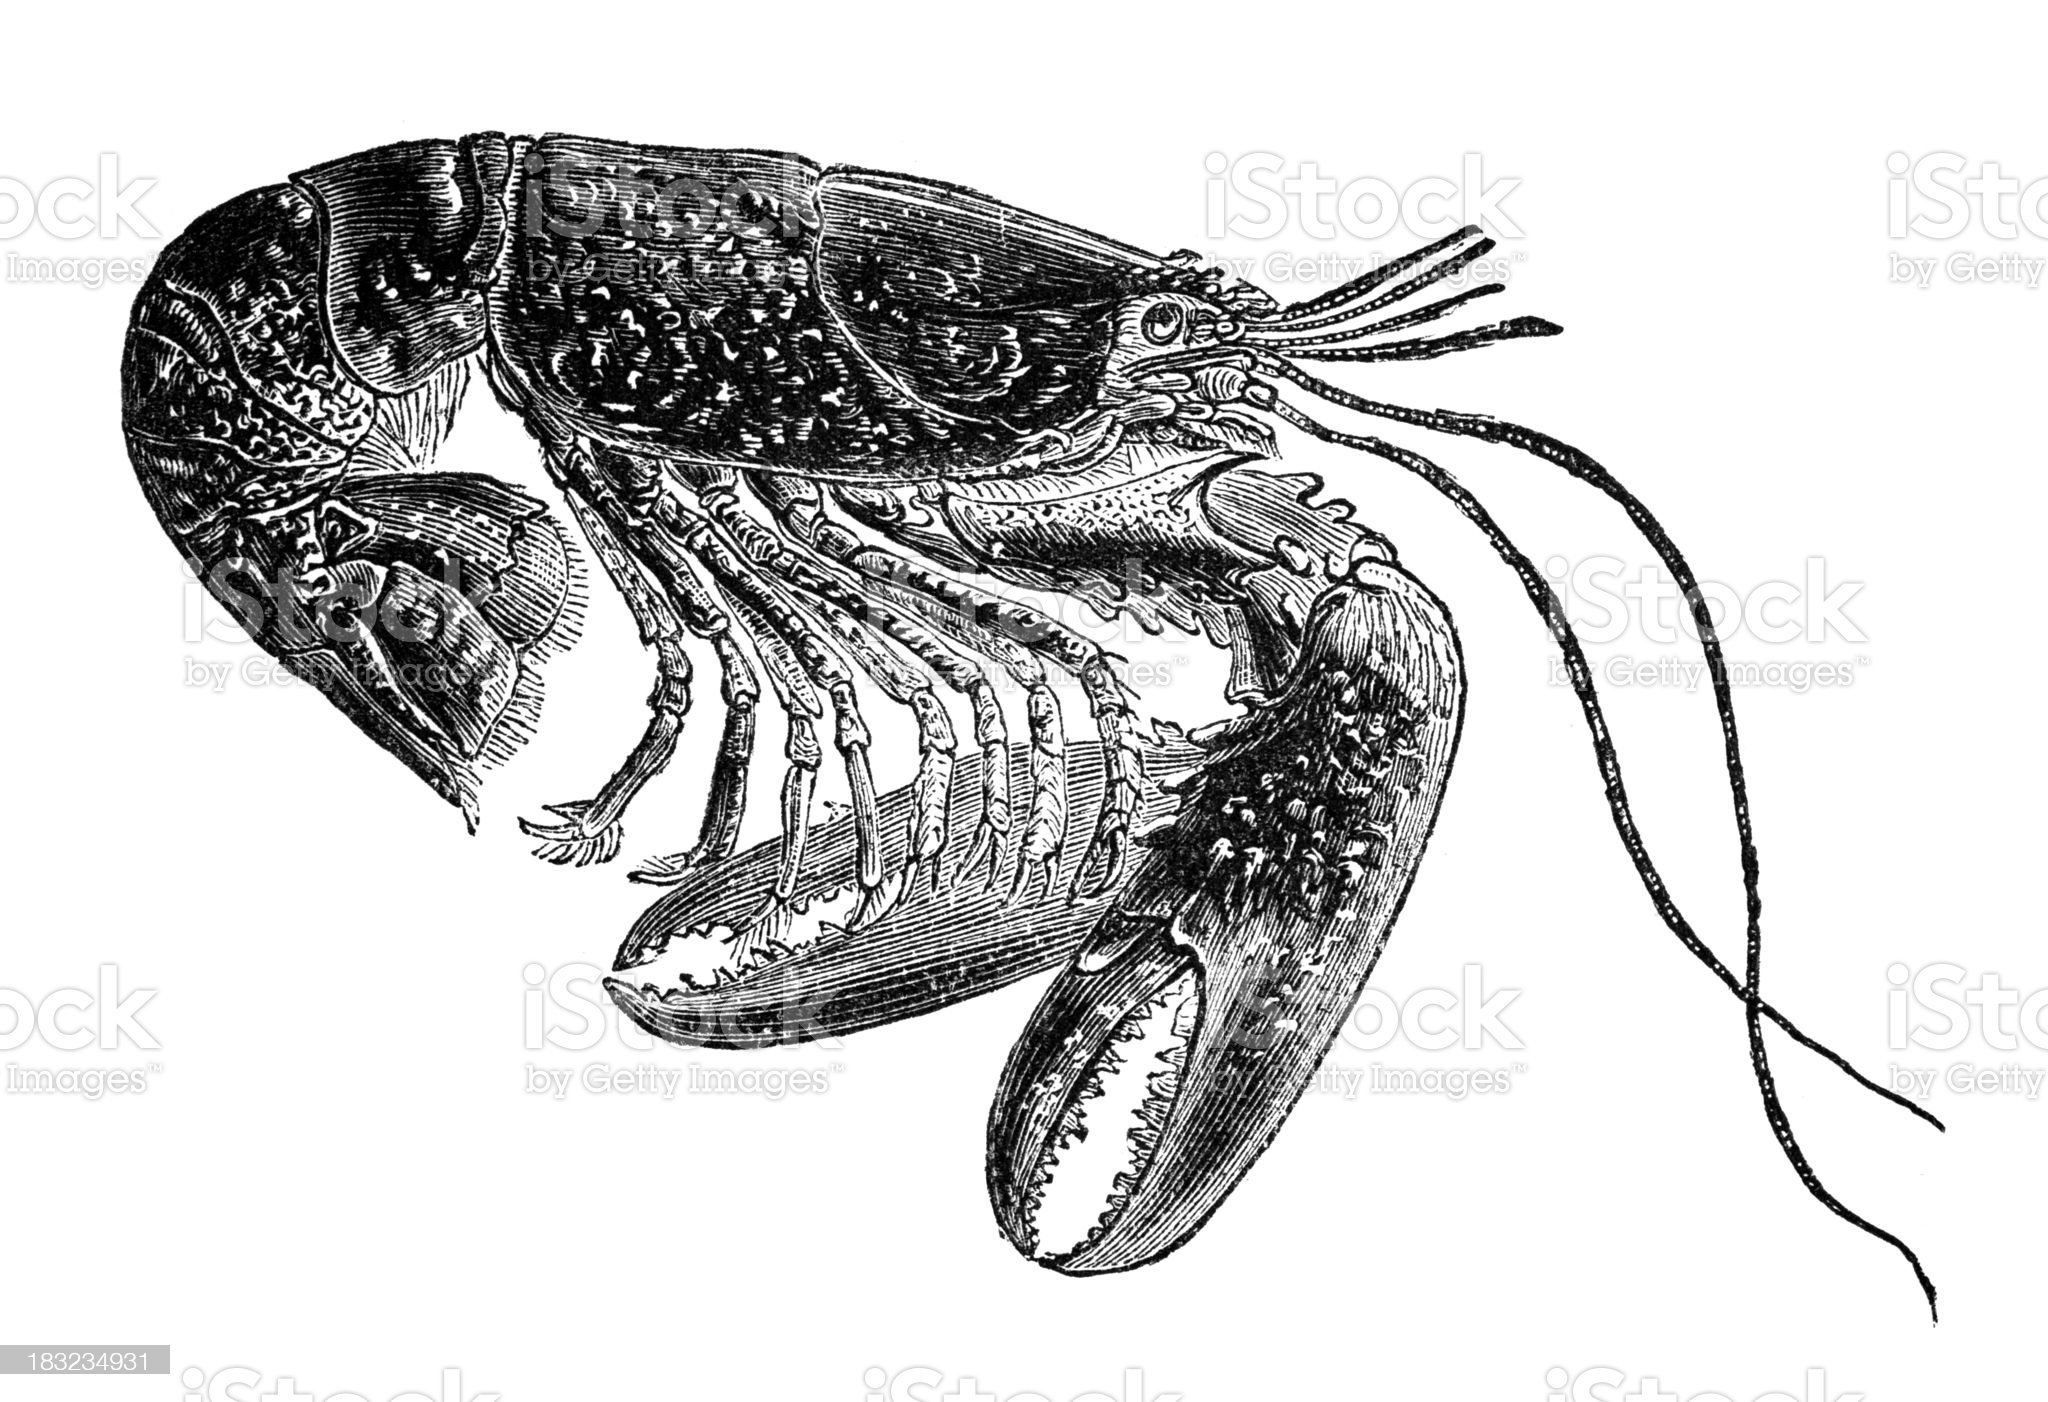 19th century engraving of a lobster royalty-free stock vector art